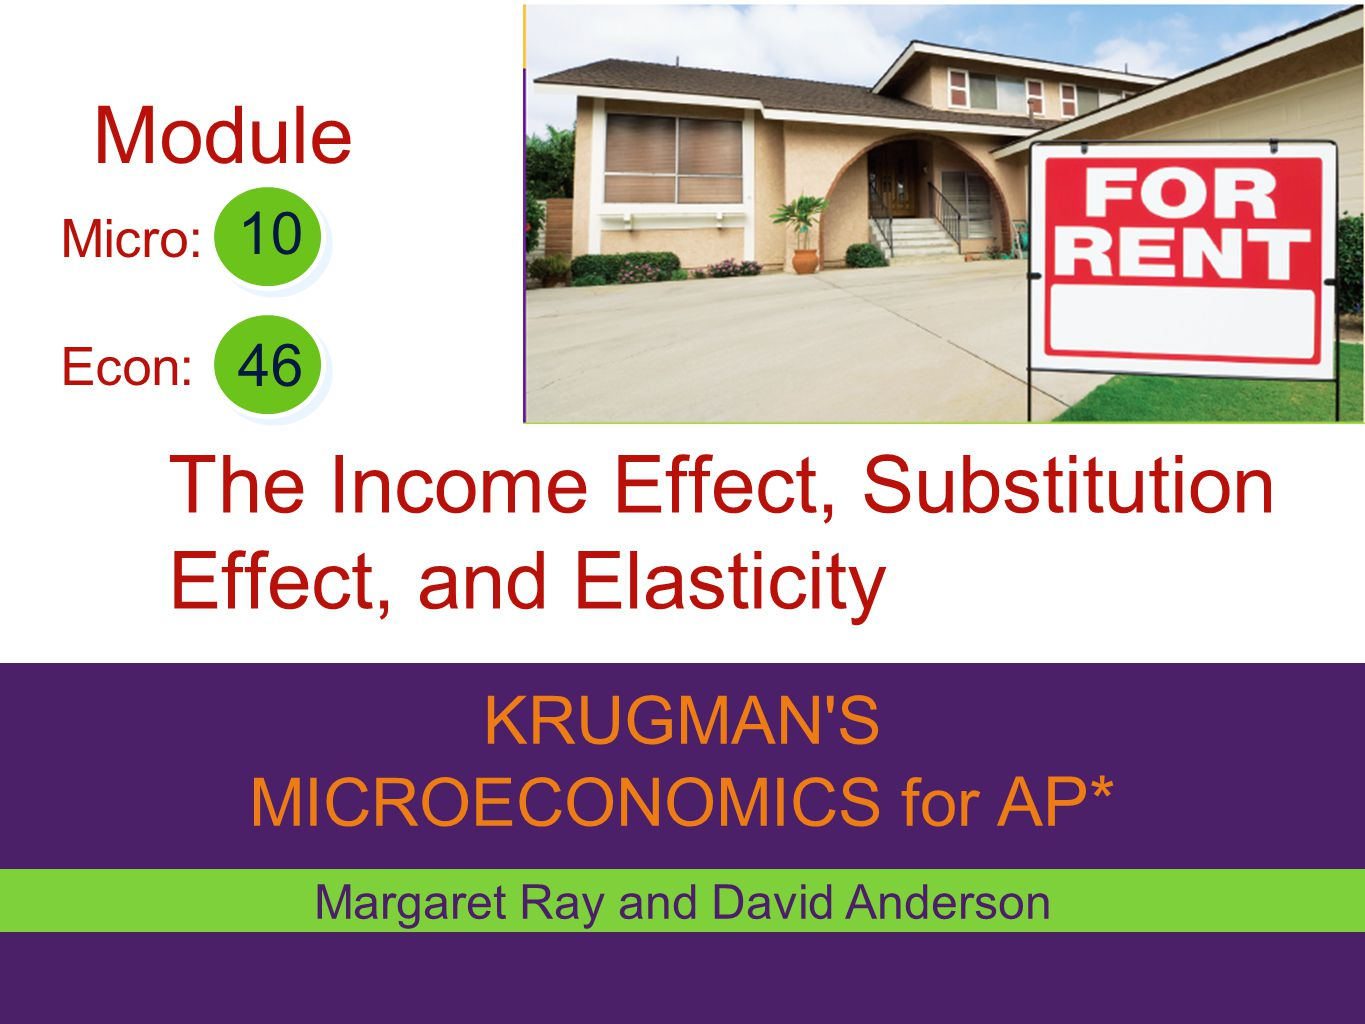 The Income Effect, Substitution Effect, and Elasticity